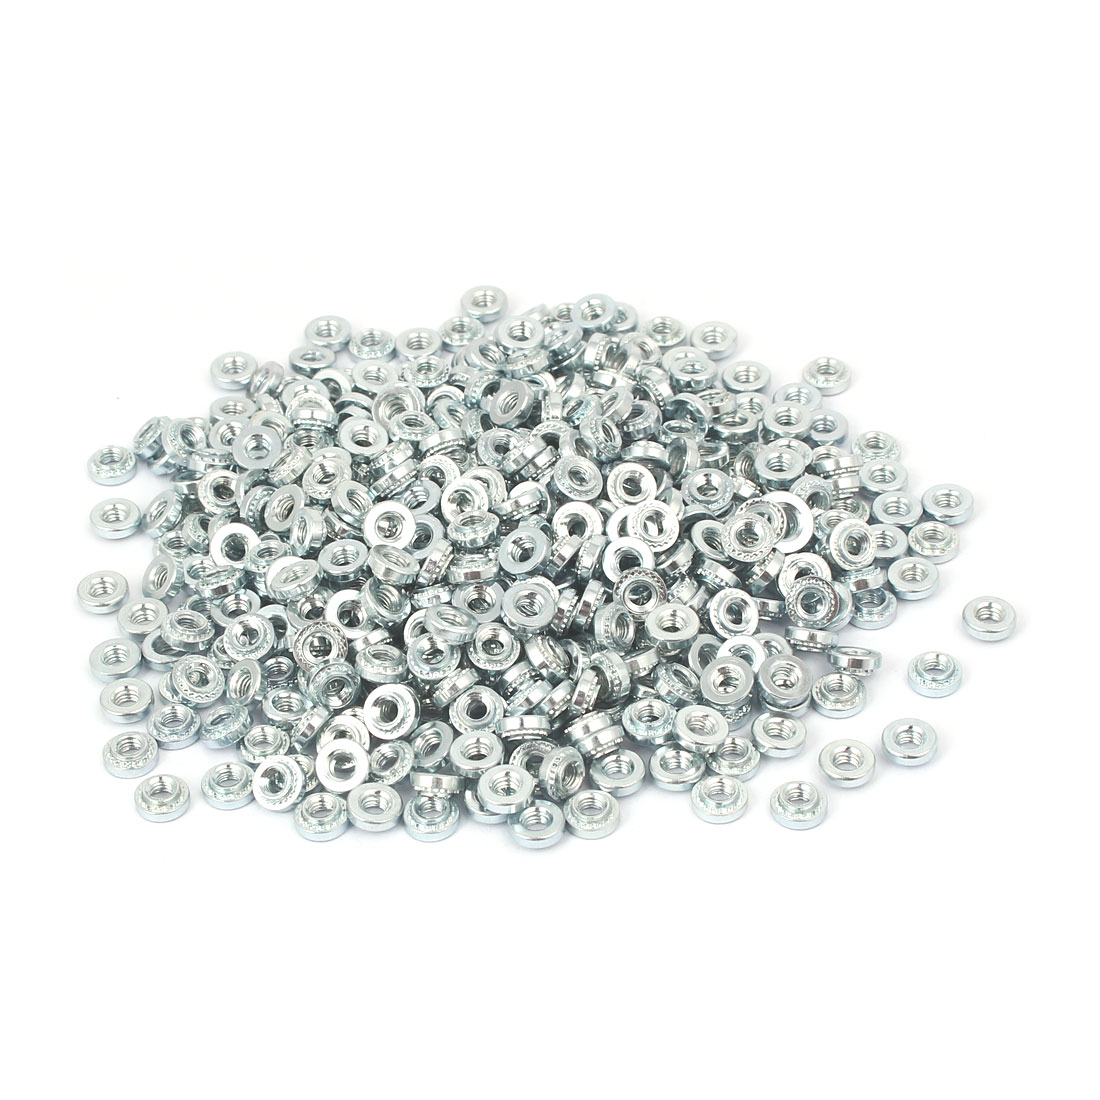 S-M3-0 Carbon Steel Self Clinching Rivet Nut Fastener 500pcs for 0.8mm Thin Plates